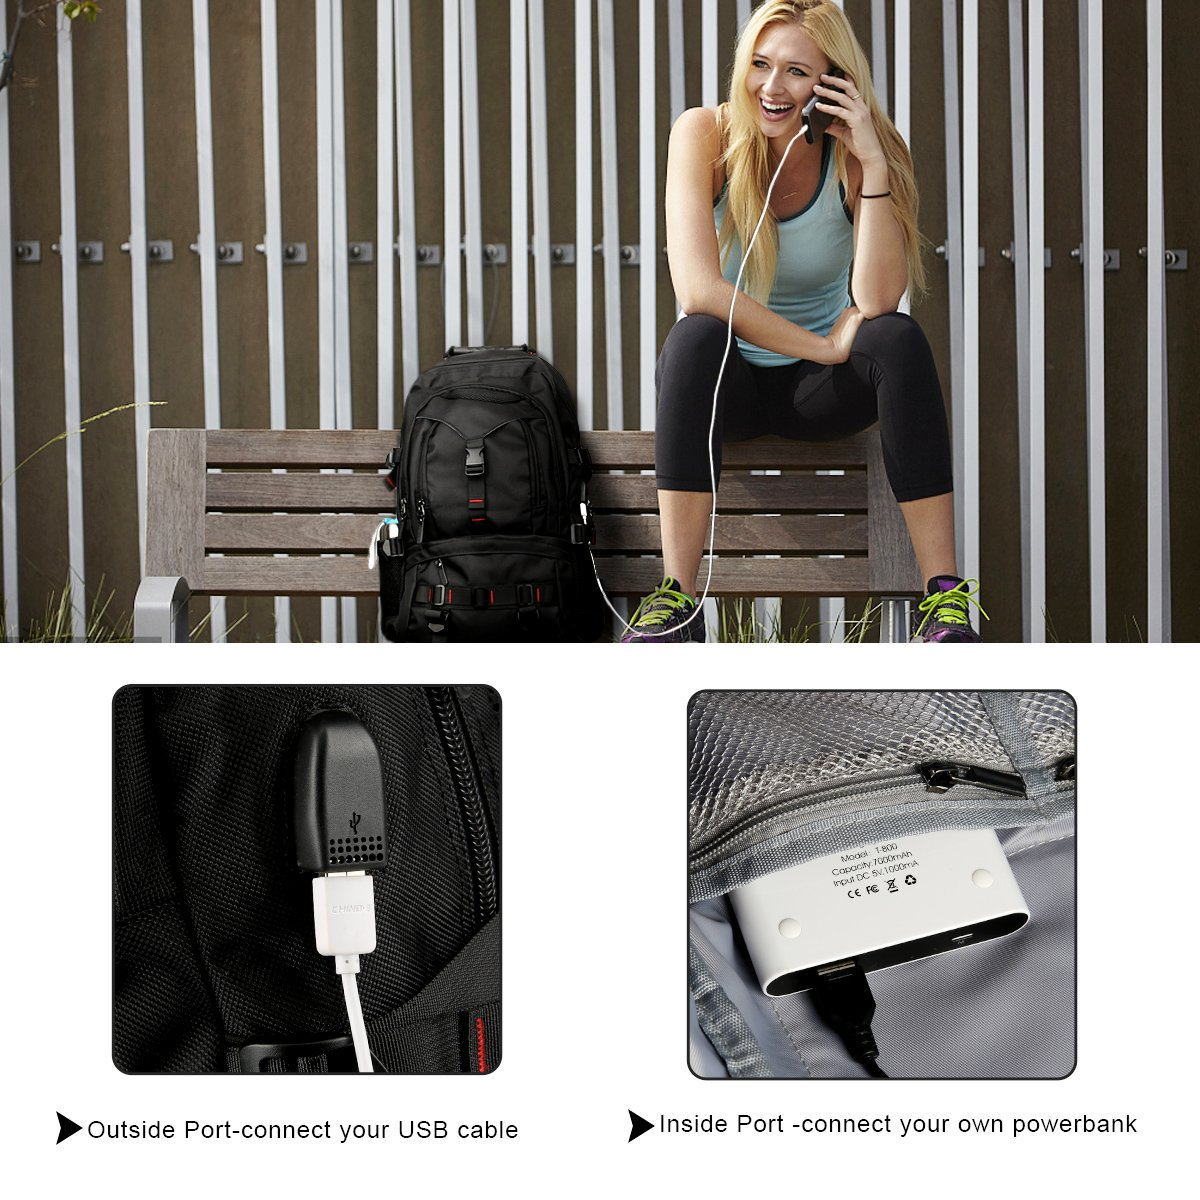 Fashion Laptop Backpack Contains Multi-Function Pockets, Tocode Durable Travel Backpack with USB Charging Port Stylish Anti-Theft School Bag Fits 17.3 Inch Laptop Comfort Pack for Women & Men–Black I by Tocode (Image #3)